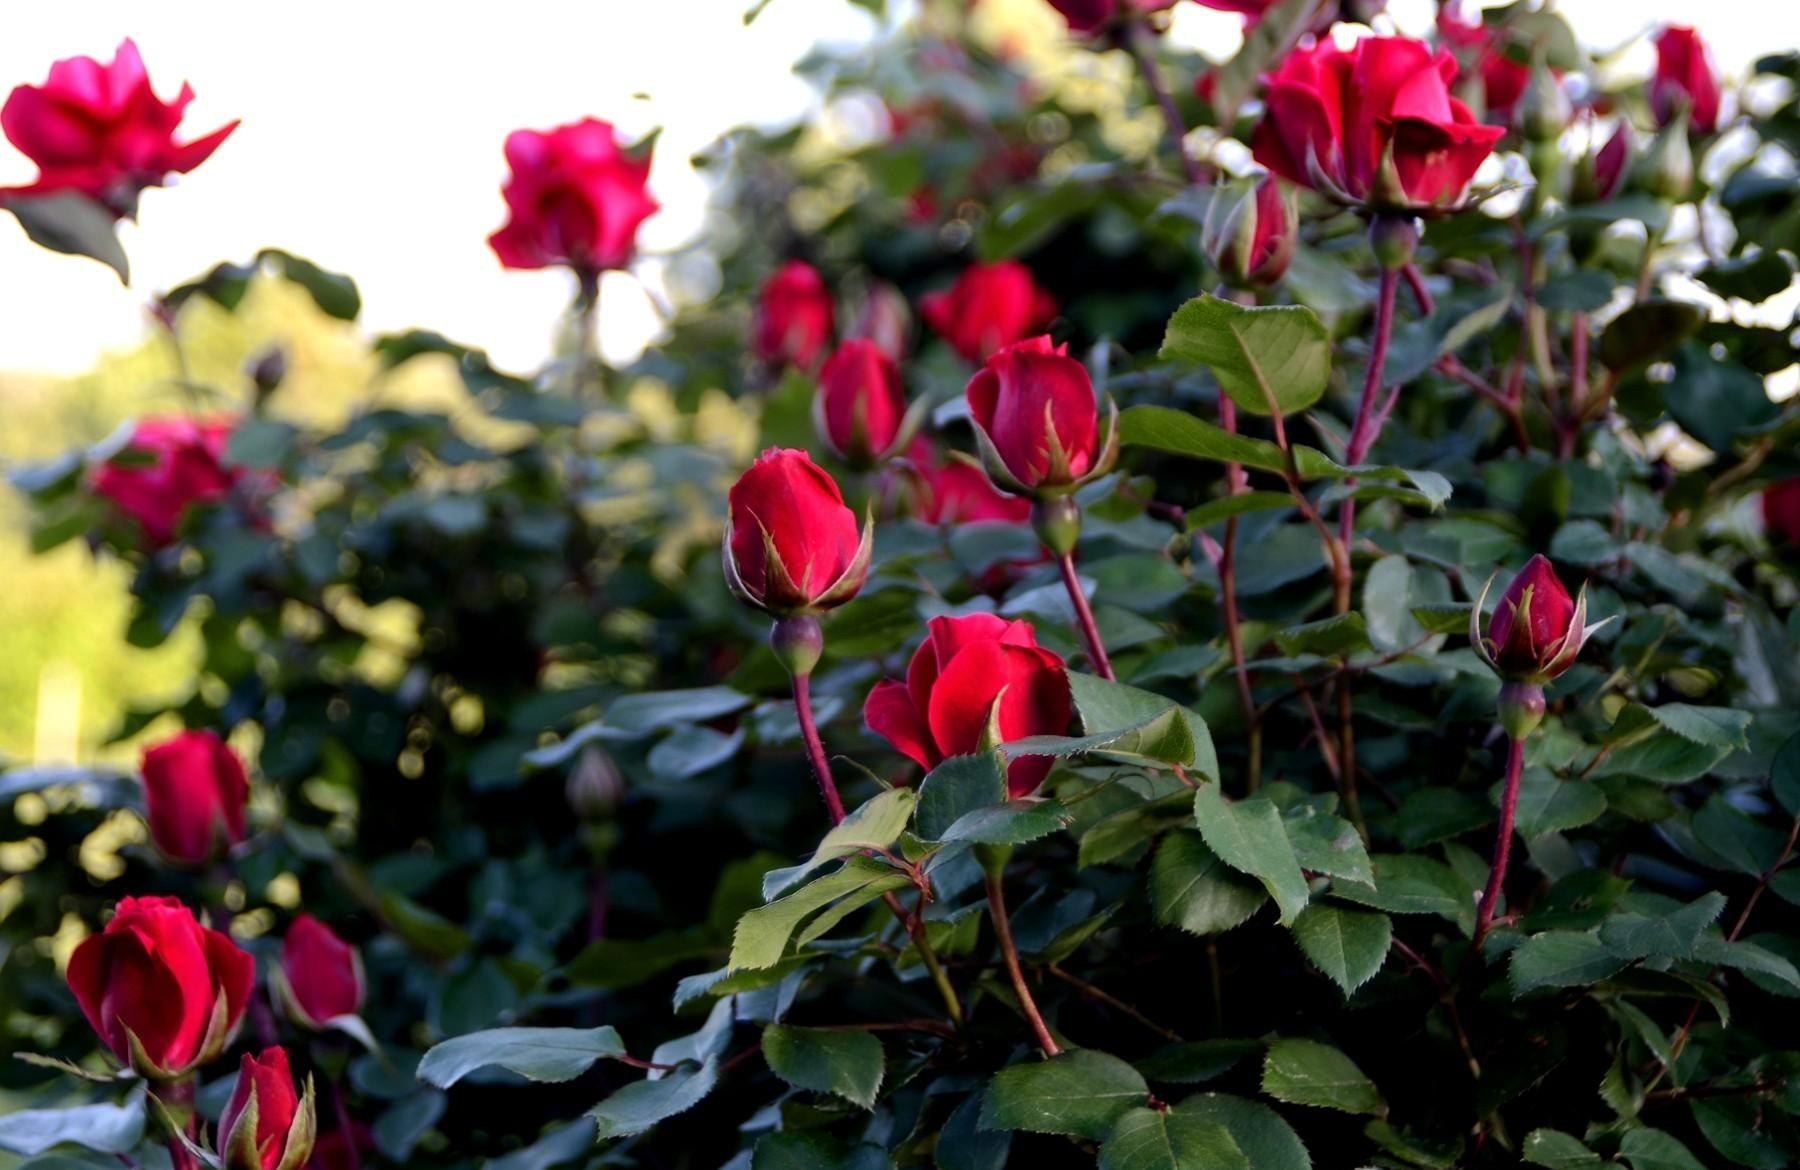 149295 download wallpaper Roses, Flowers, Bush, Greens, Garden, Buds screensavers and pictures for free